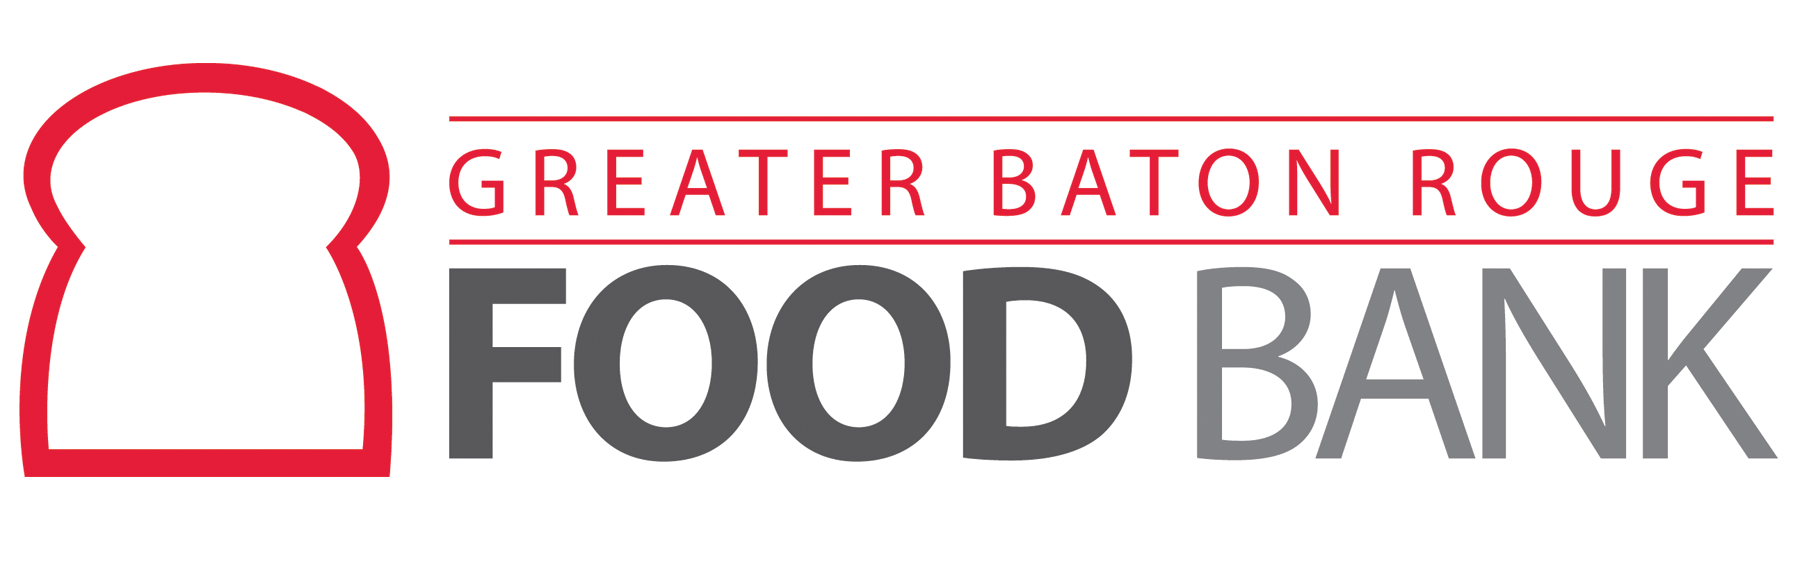 Greater Baton Rouge Food Bank